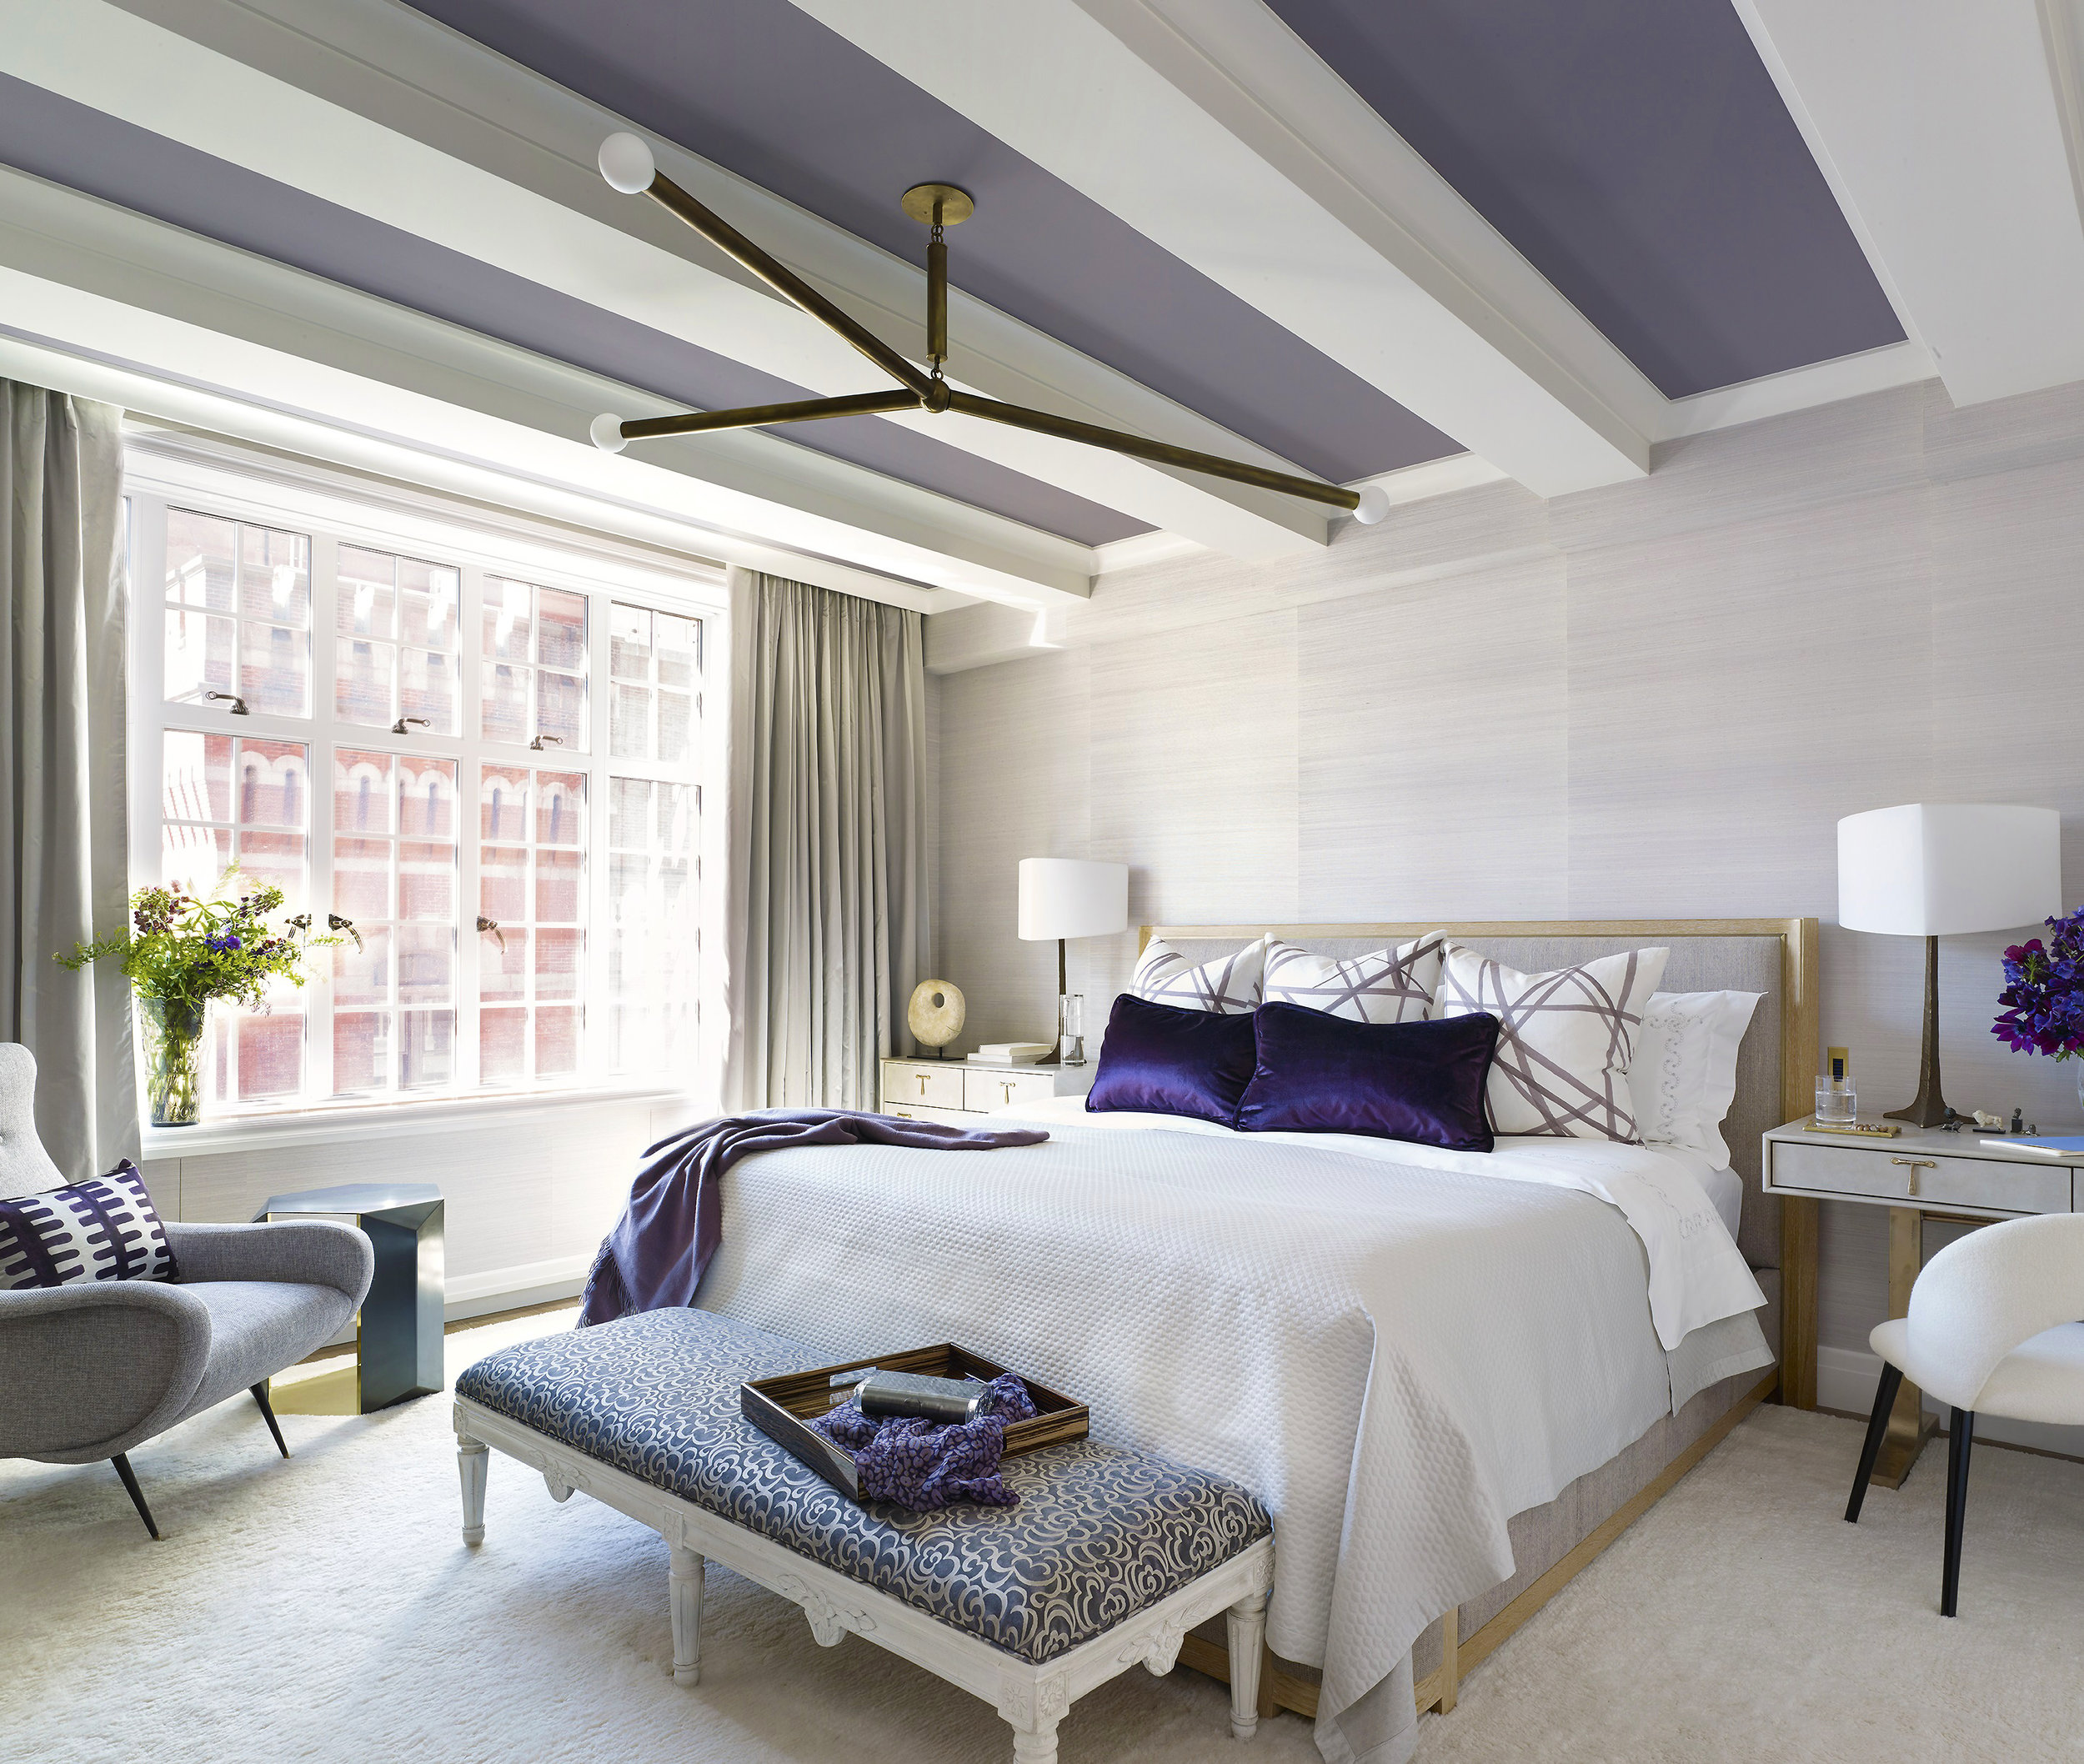 Stonefox 115 East 67th Street Master Bedroom MEP designed by 2L Engineering